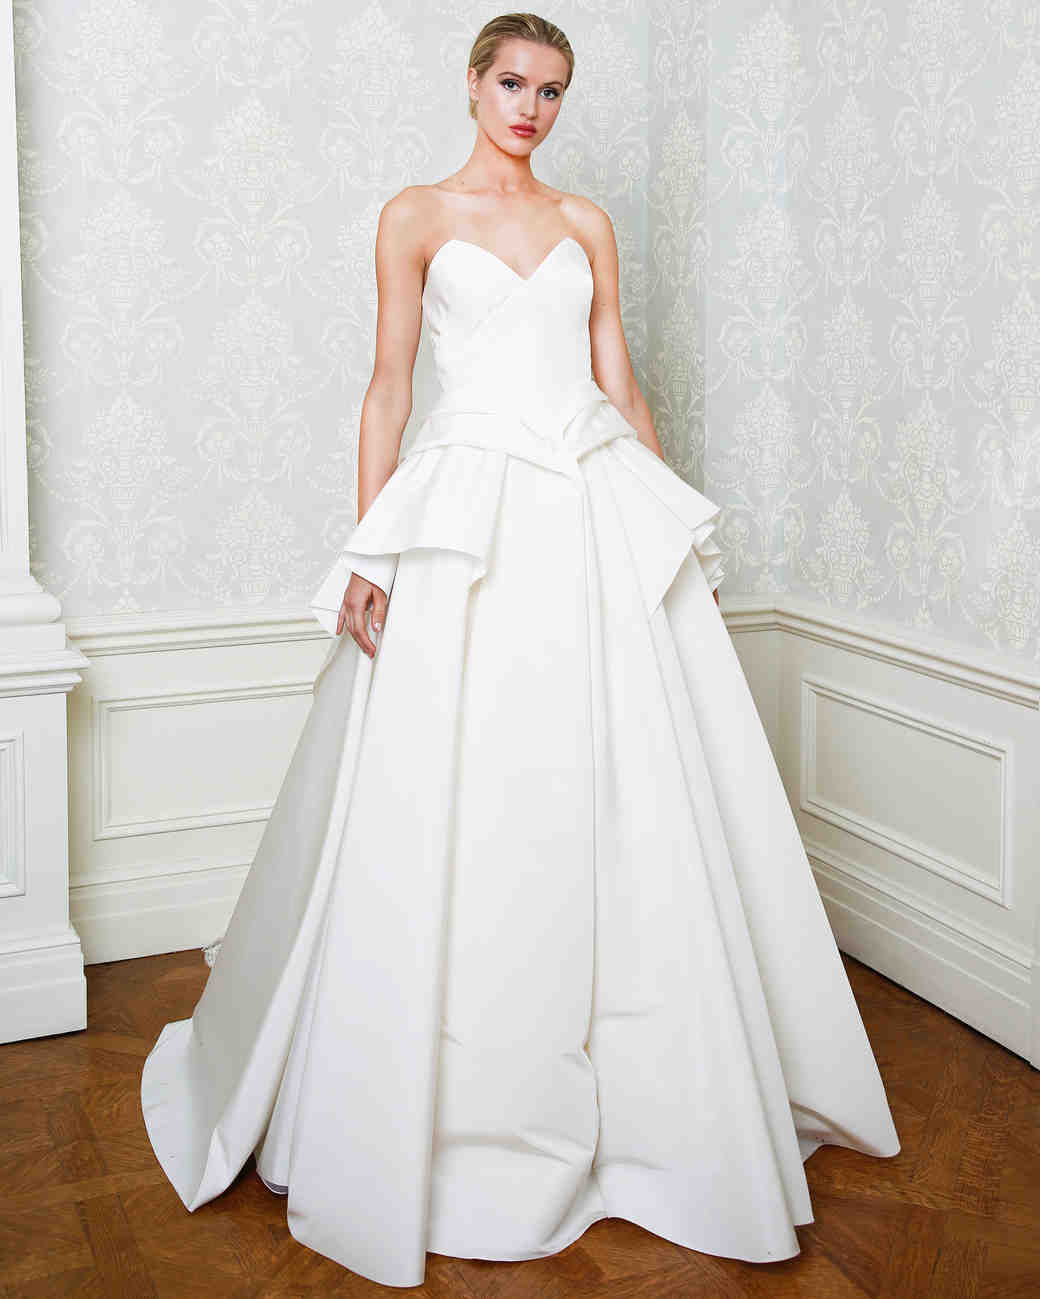 Sophia Tolli Bridal Spring 2019: Cristina Ottaviano Spring 2019 Wedding Dress Collection